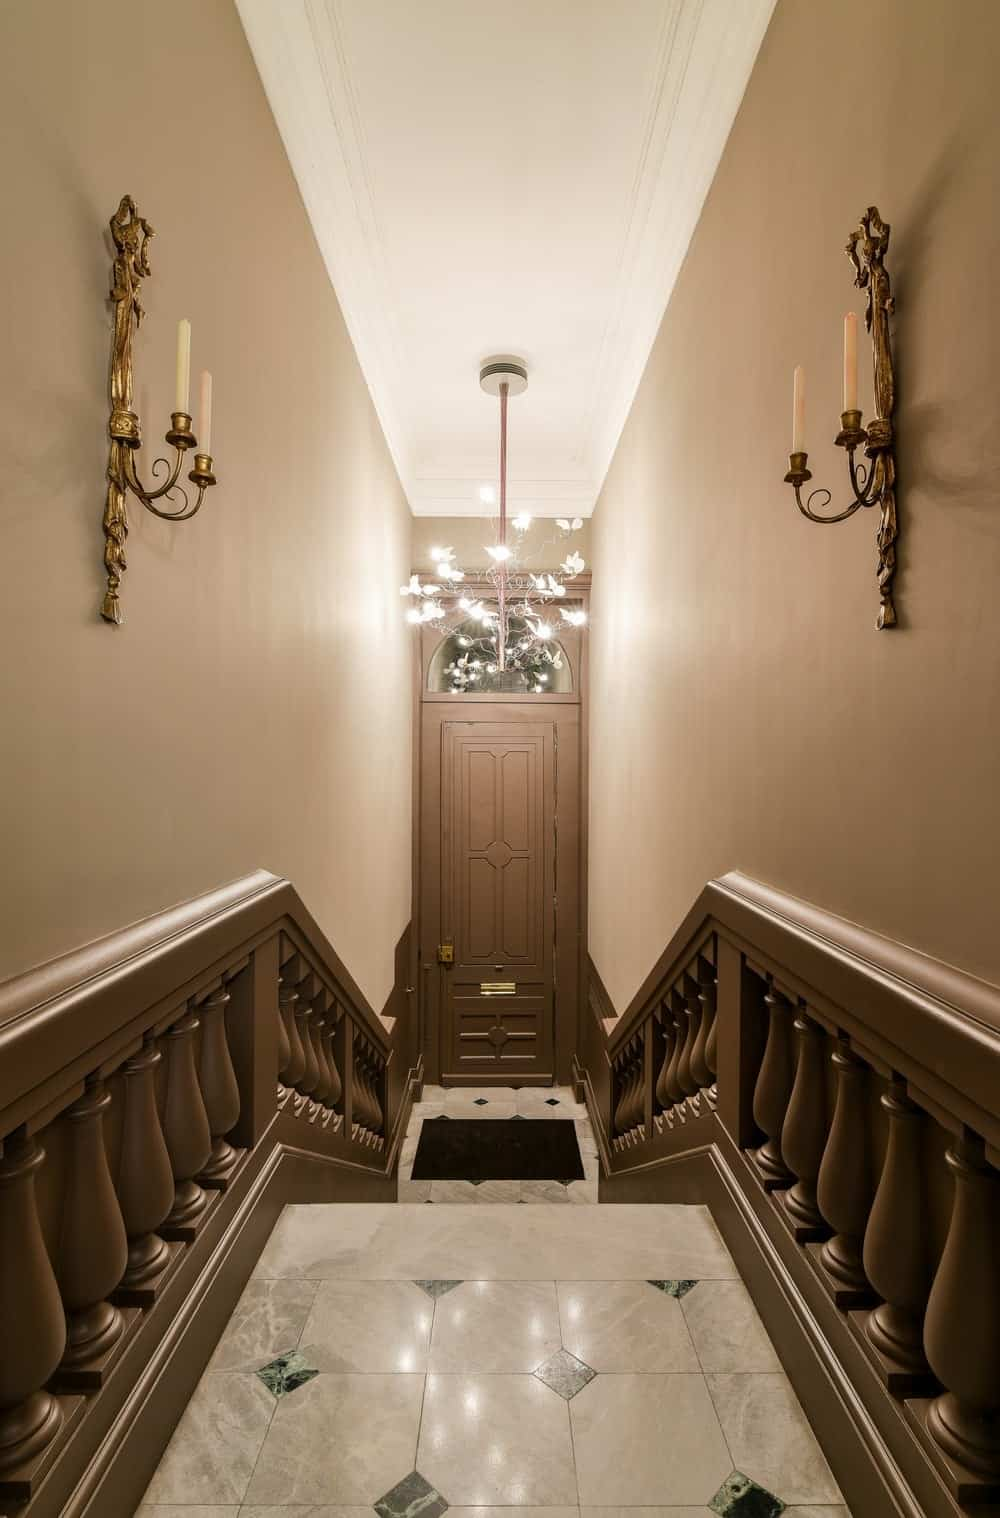 Entry hall with straight staircase lighted by a chandelier and wall lights. Photo credit: Mickaël Martins Afonso